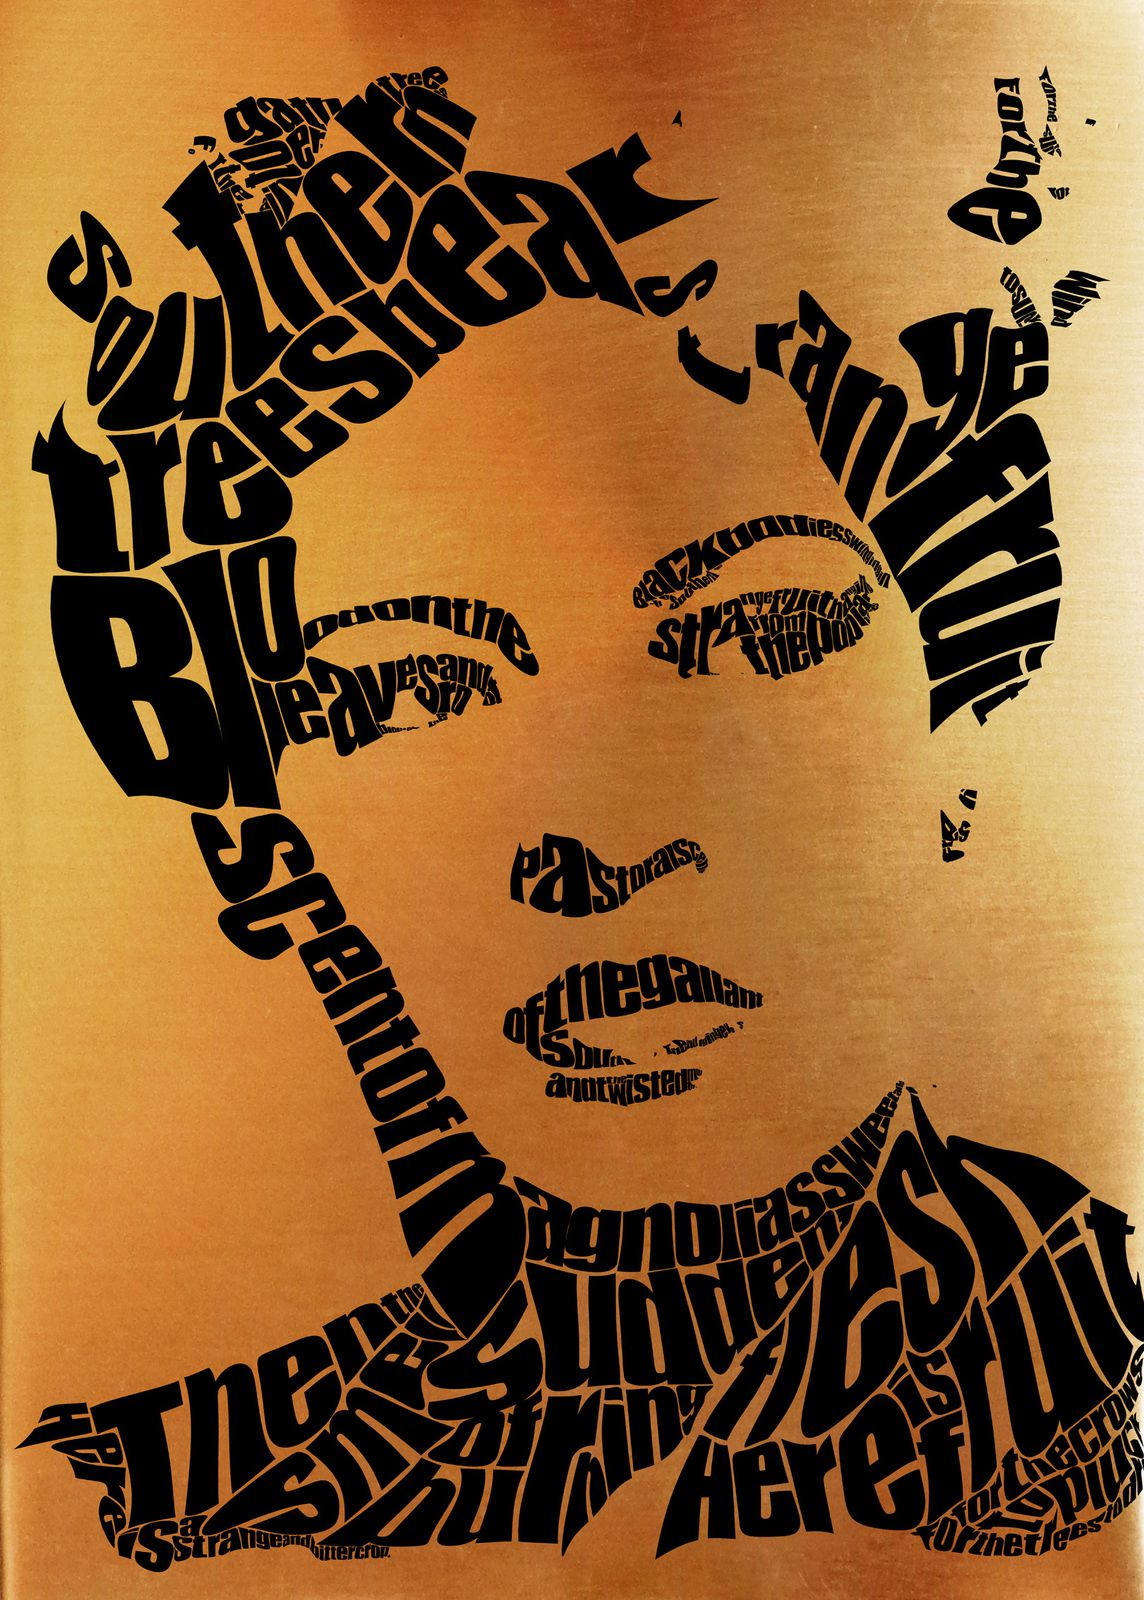 Billie Holiday by Guillaume Saix